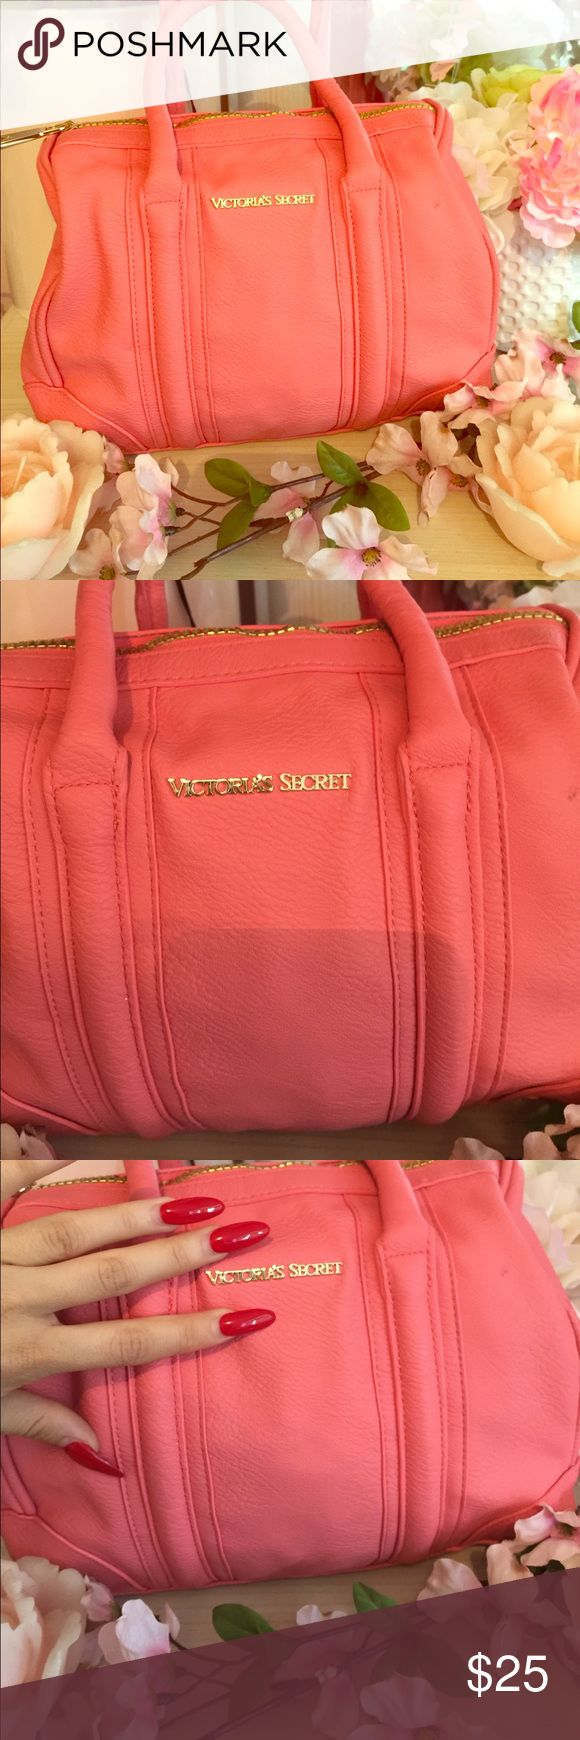 Victoria secret handbag Victoria secret small hand bag, in a coral color perfect condition. Victoria's Secret Bags Satchels